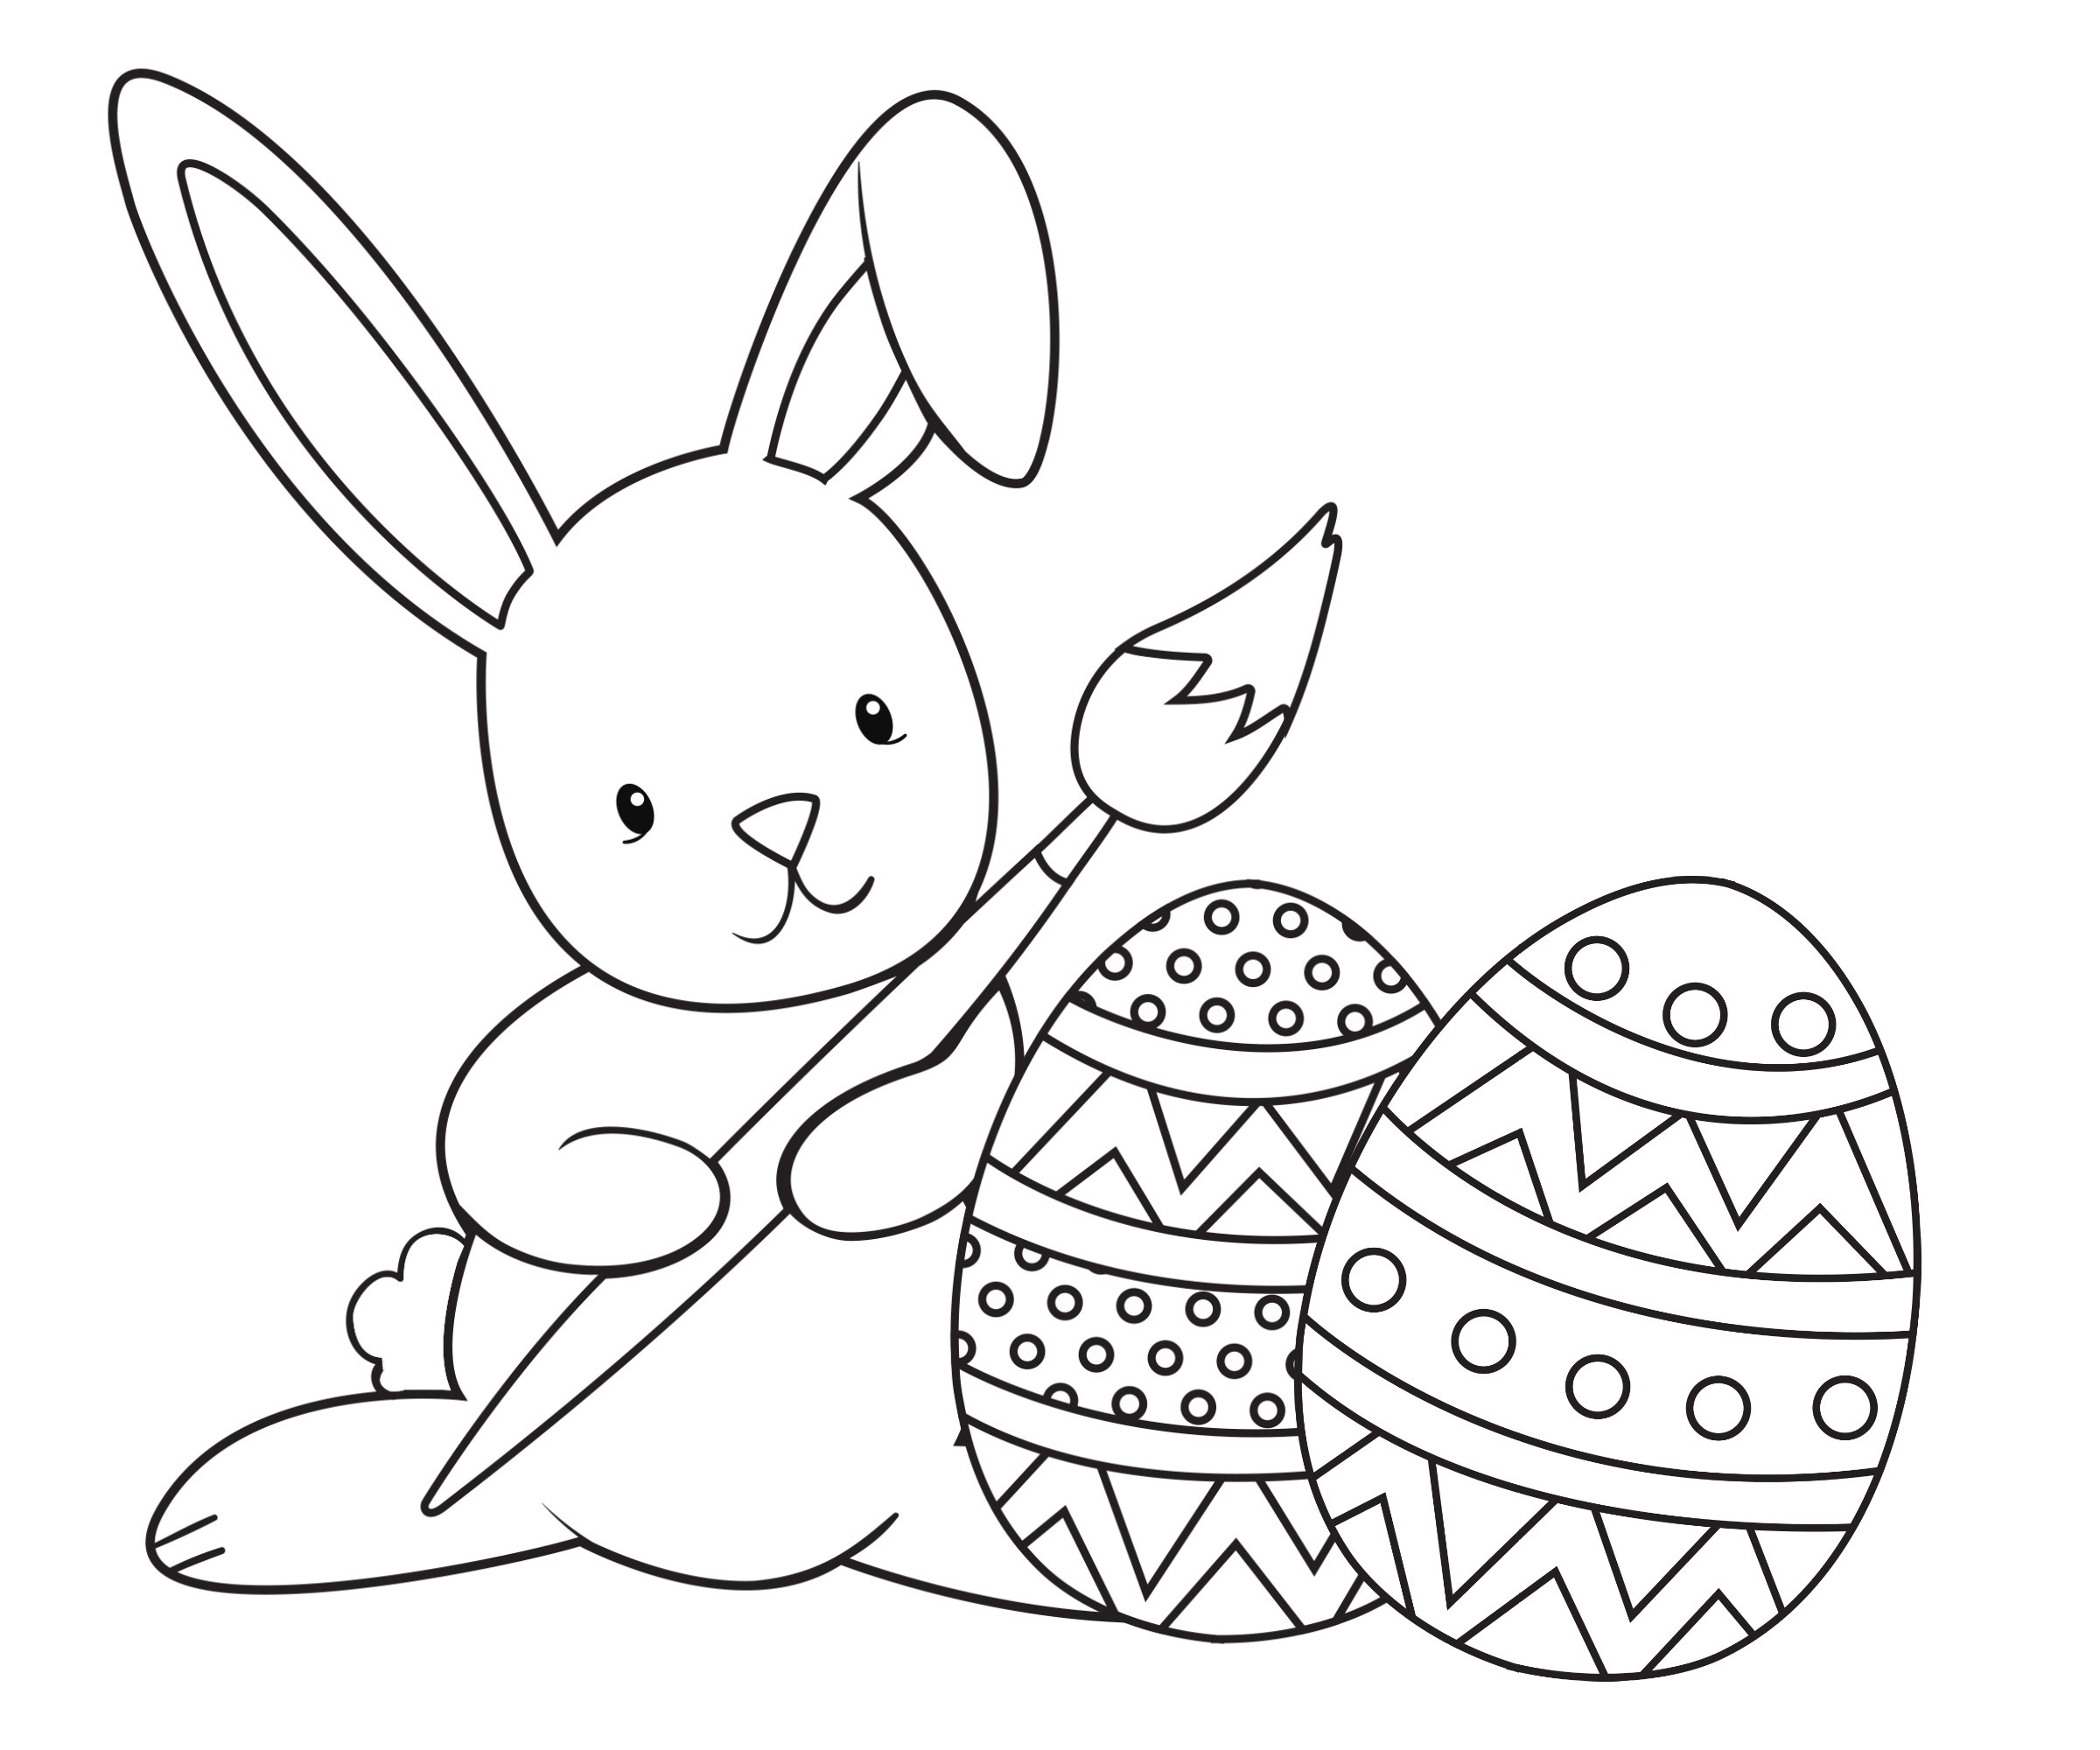 Best ideas about Free Coloring Pages Of The Easter Bunny . Save or Pin Easter Coloring Pages Crazy Little Projects Now.